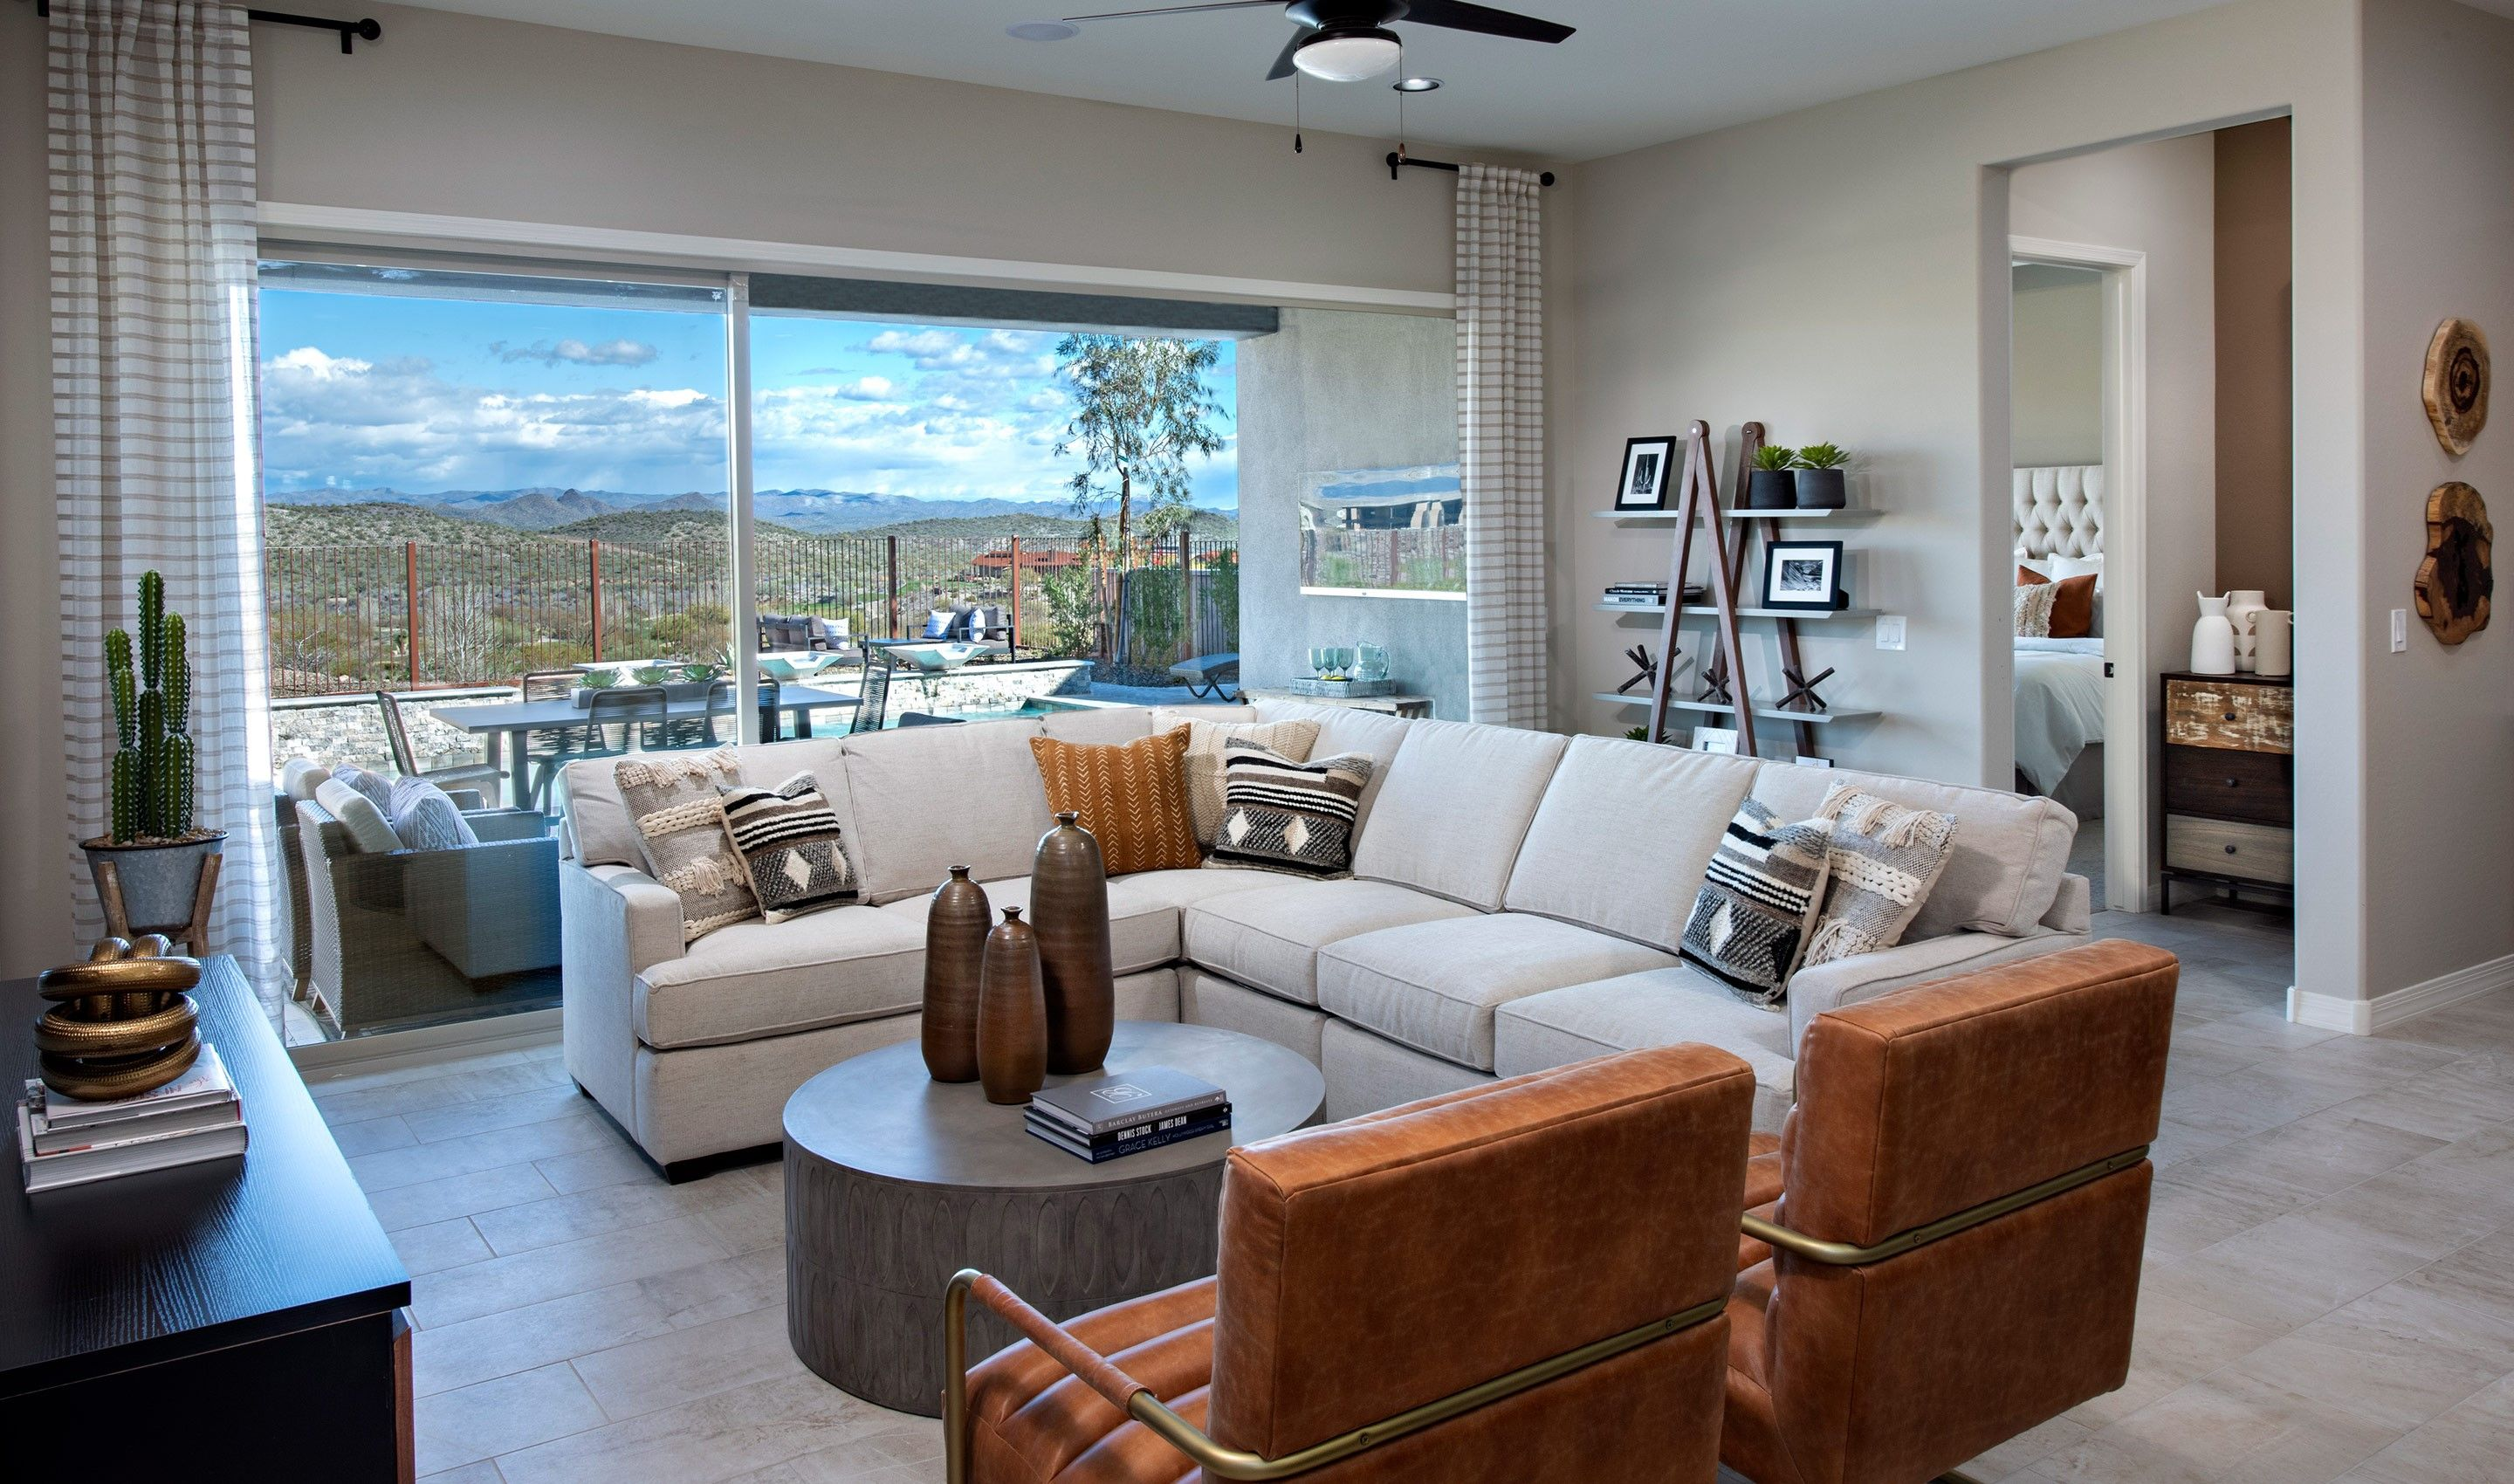 Living Area featured in the Cavallo By K. Hovnanian's® Four Seasons in Phoenix-Mesa, AZ